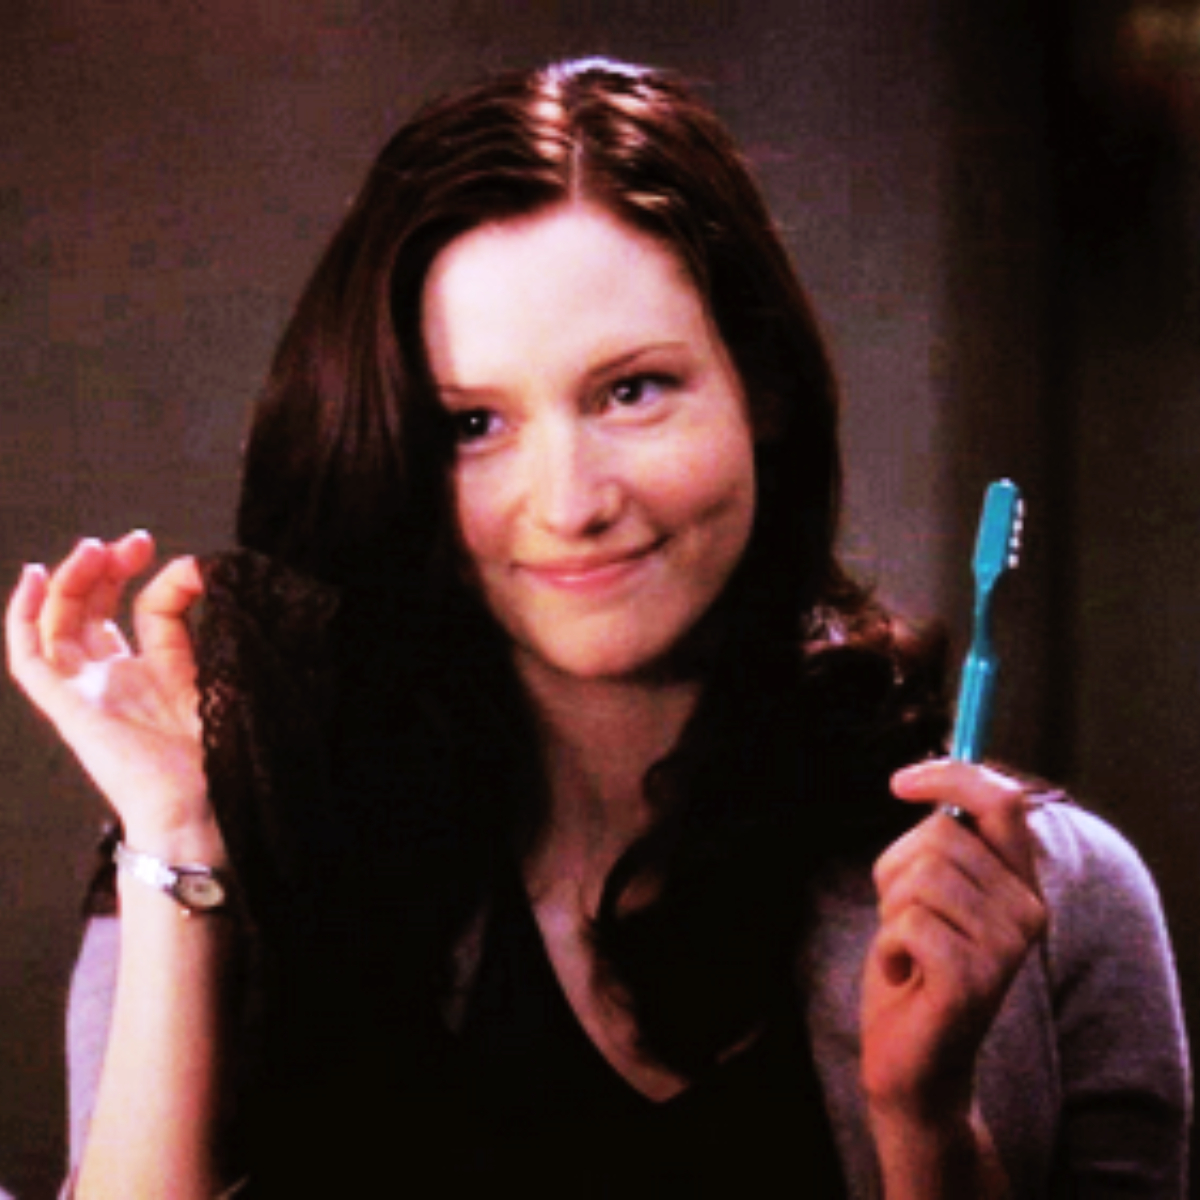 Grey's Anatomy: Top 5 moments of Lexie Grey that will make you miss the beloved character more